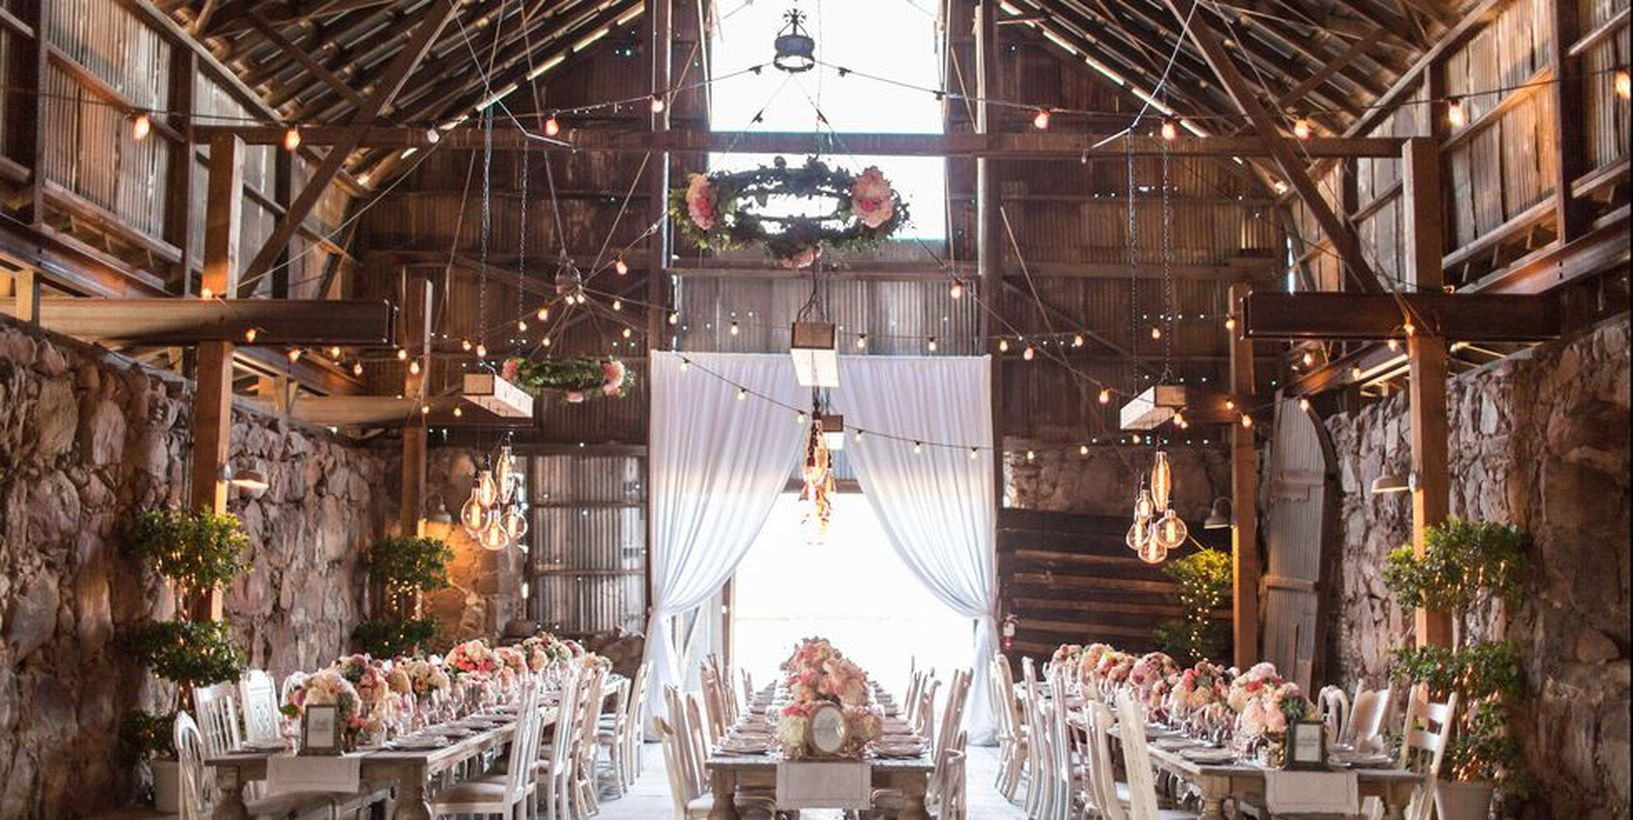 A beautiful outdoor venue for fall wedding venues with santa margarita ranch is the perfect outdoor oasis for a natural autumn wedding.